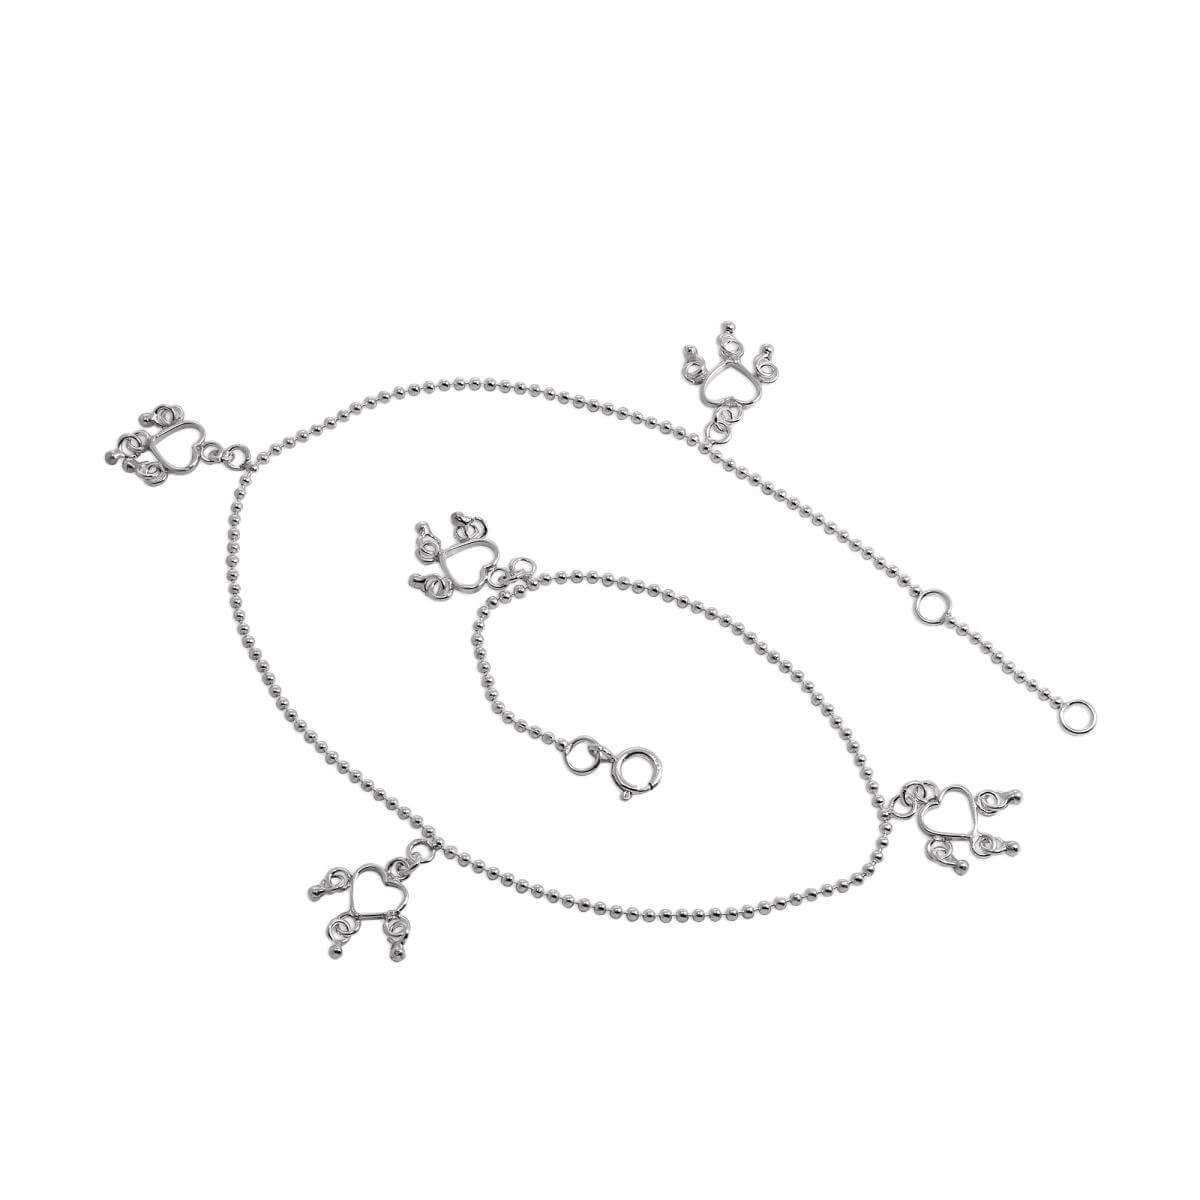 Light Sterling Silver Anklet with Open Heart Charms